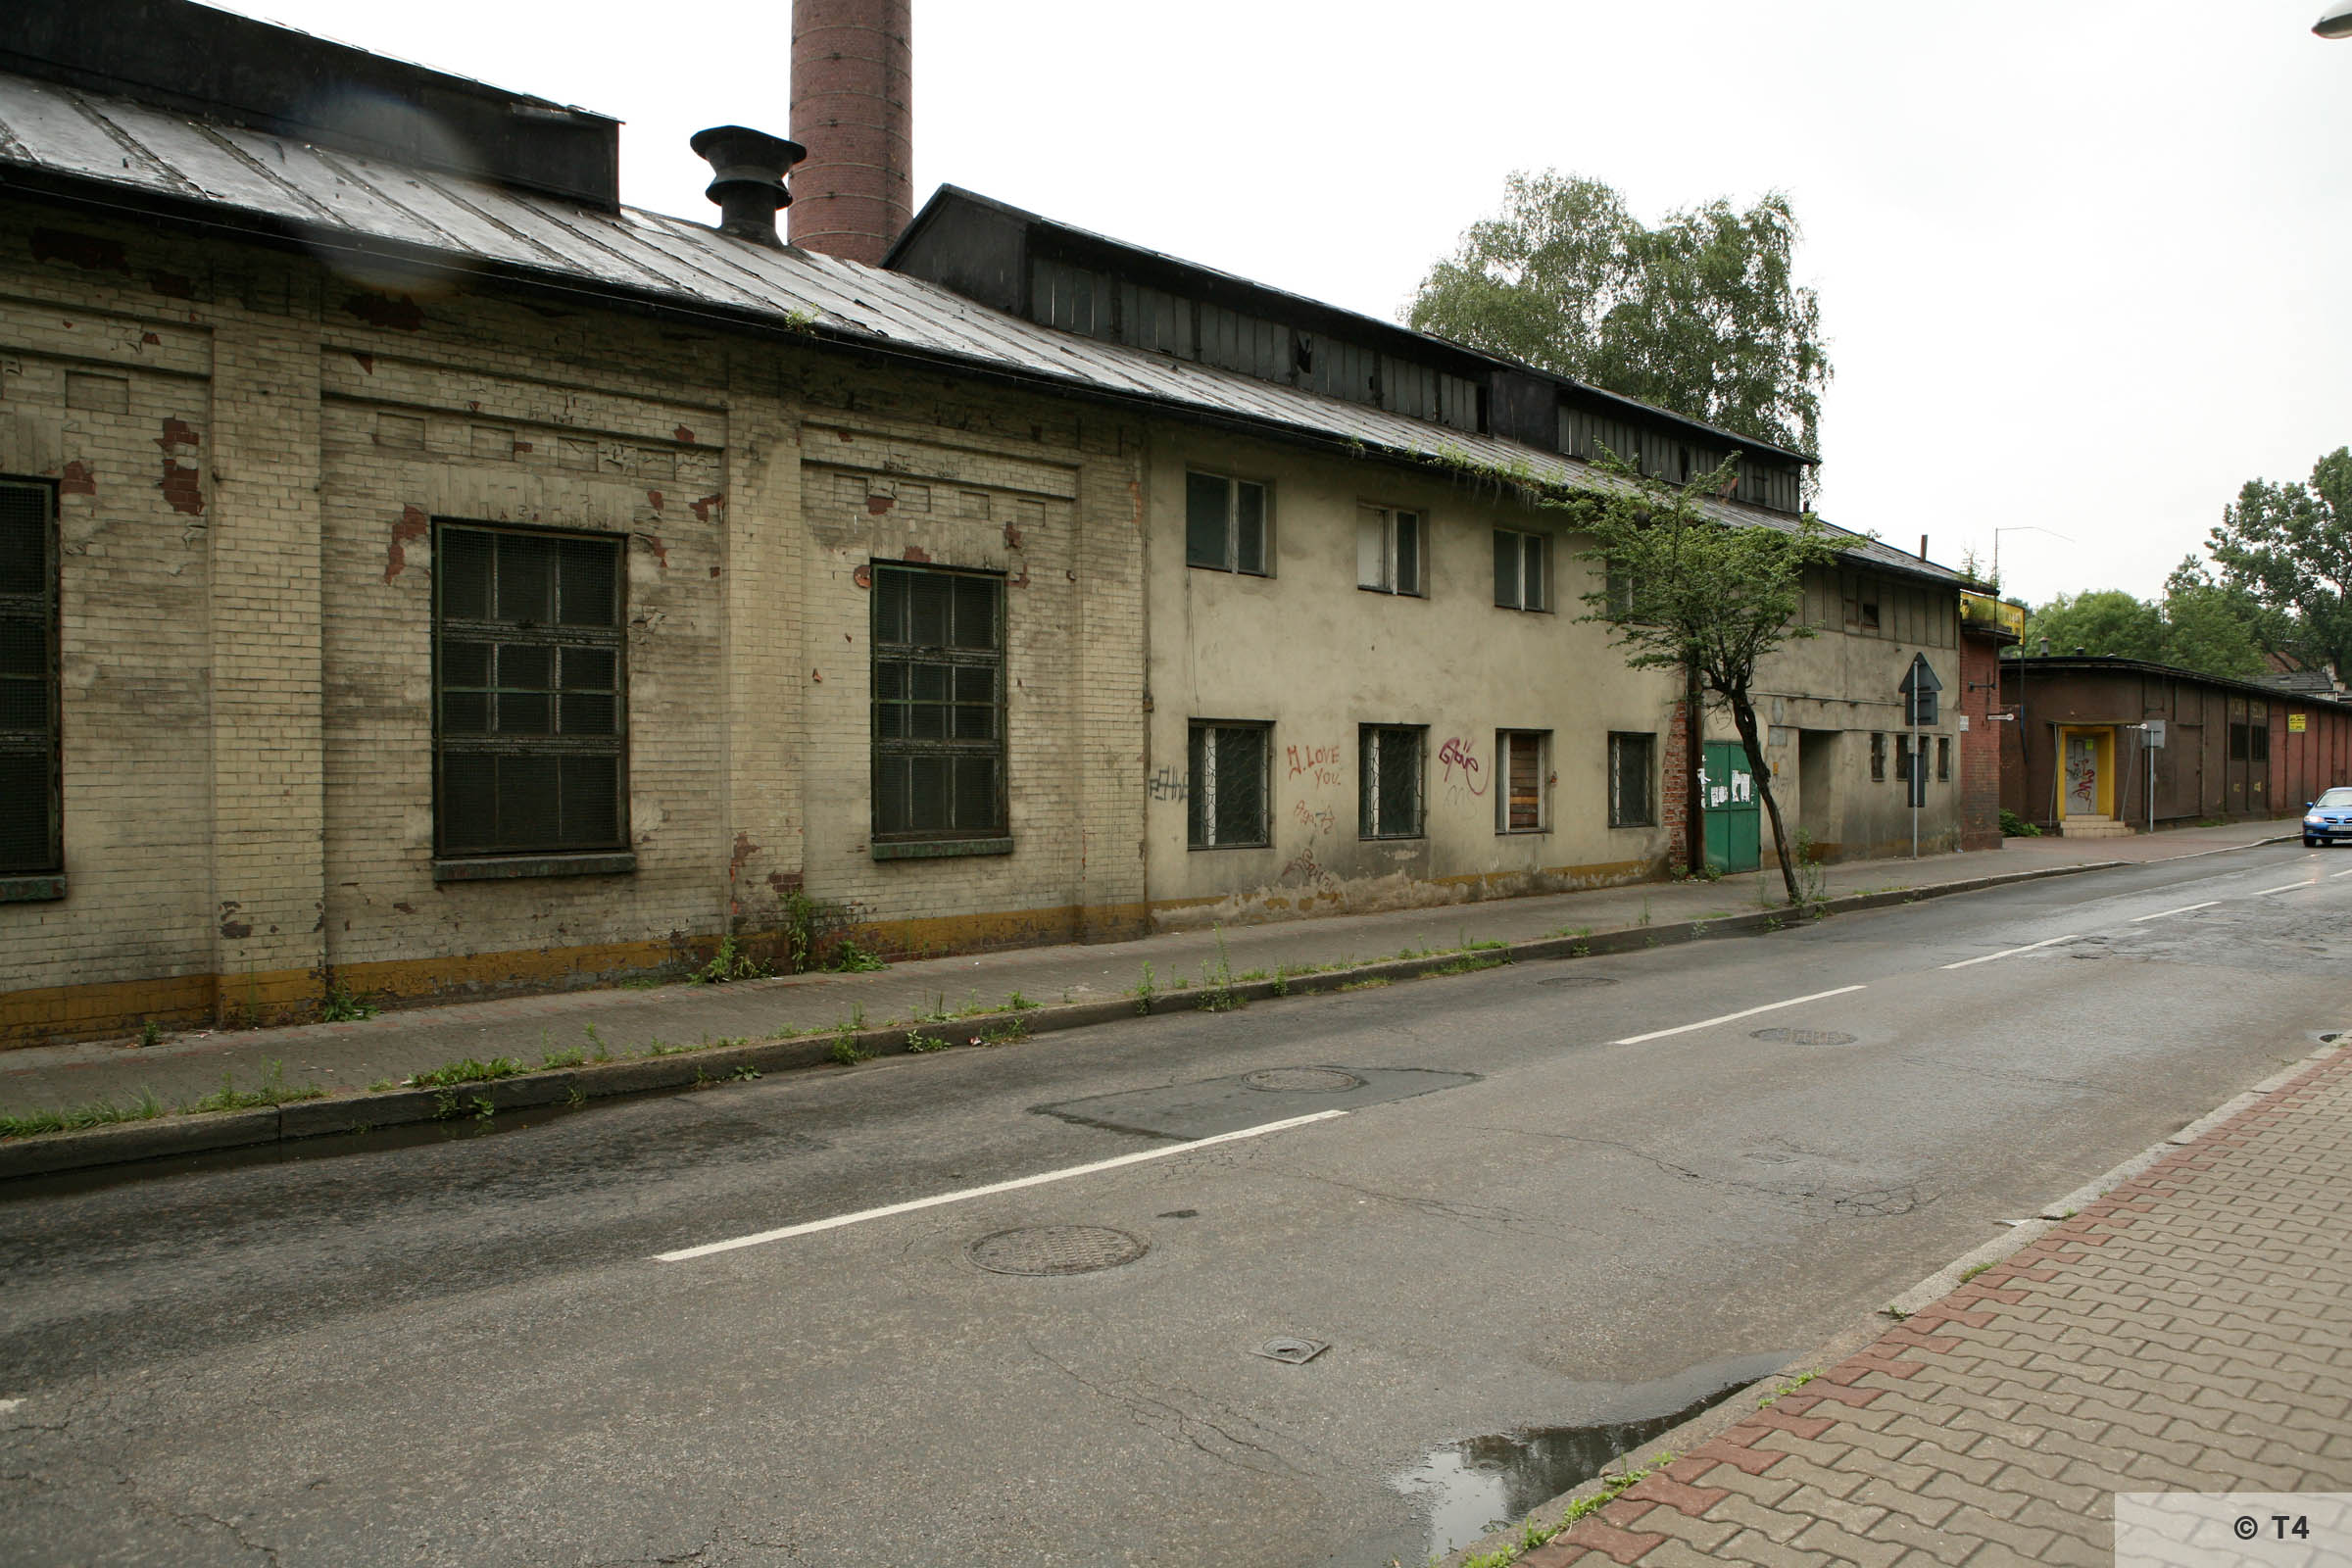 Street view of workshop in which prisoners were accomodated. 2007 T4 9531